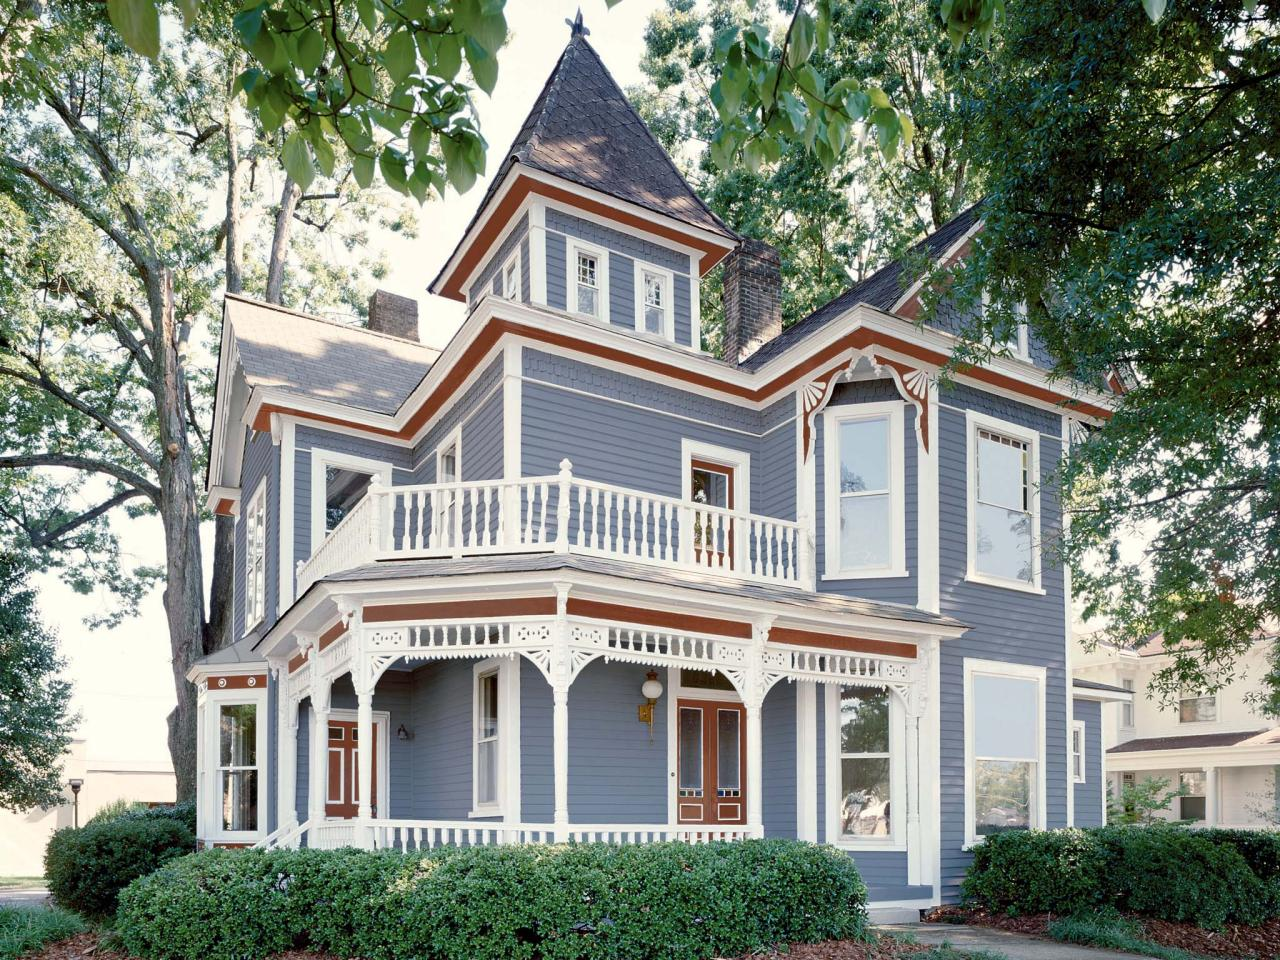 How to Select Exterior Paint Colors for a Home | DIY